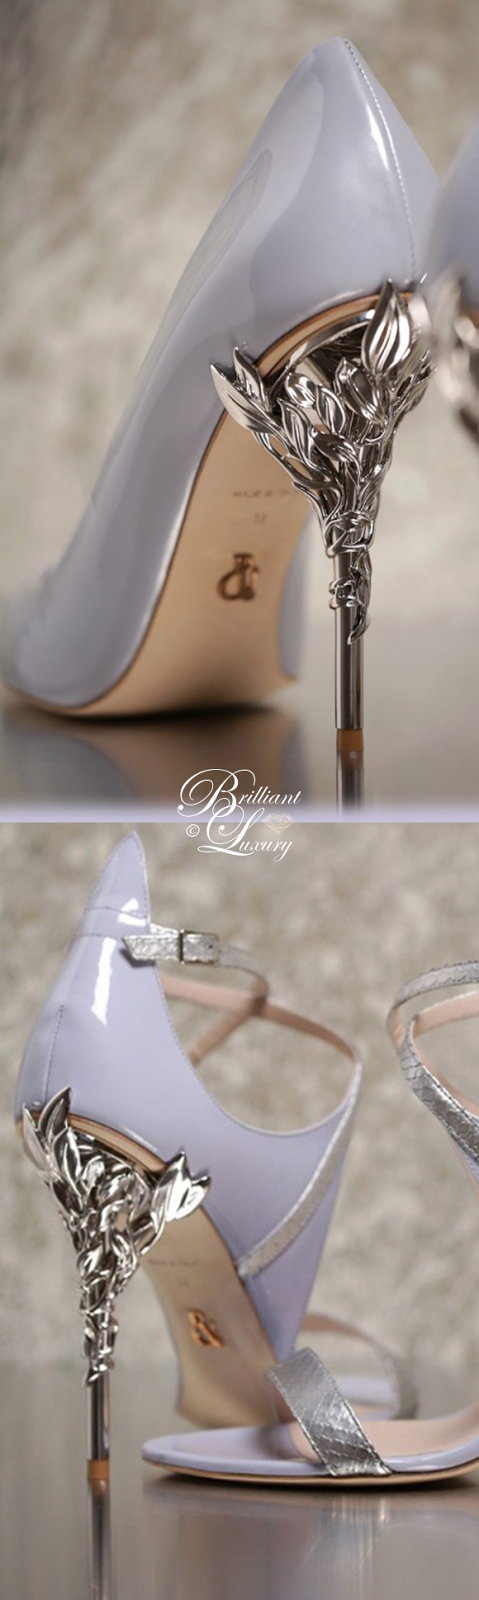 Brilliant Luxury ♦ Ralph and Russo Eden Eve Pump and Sandal